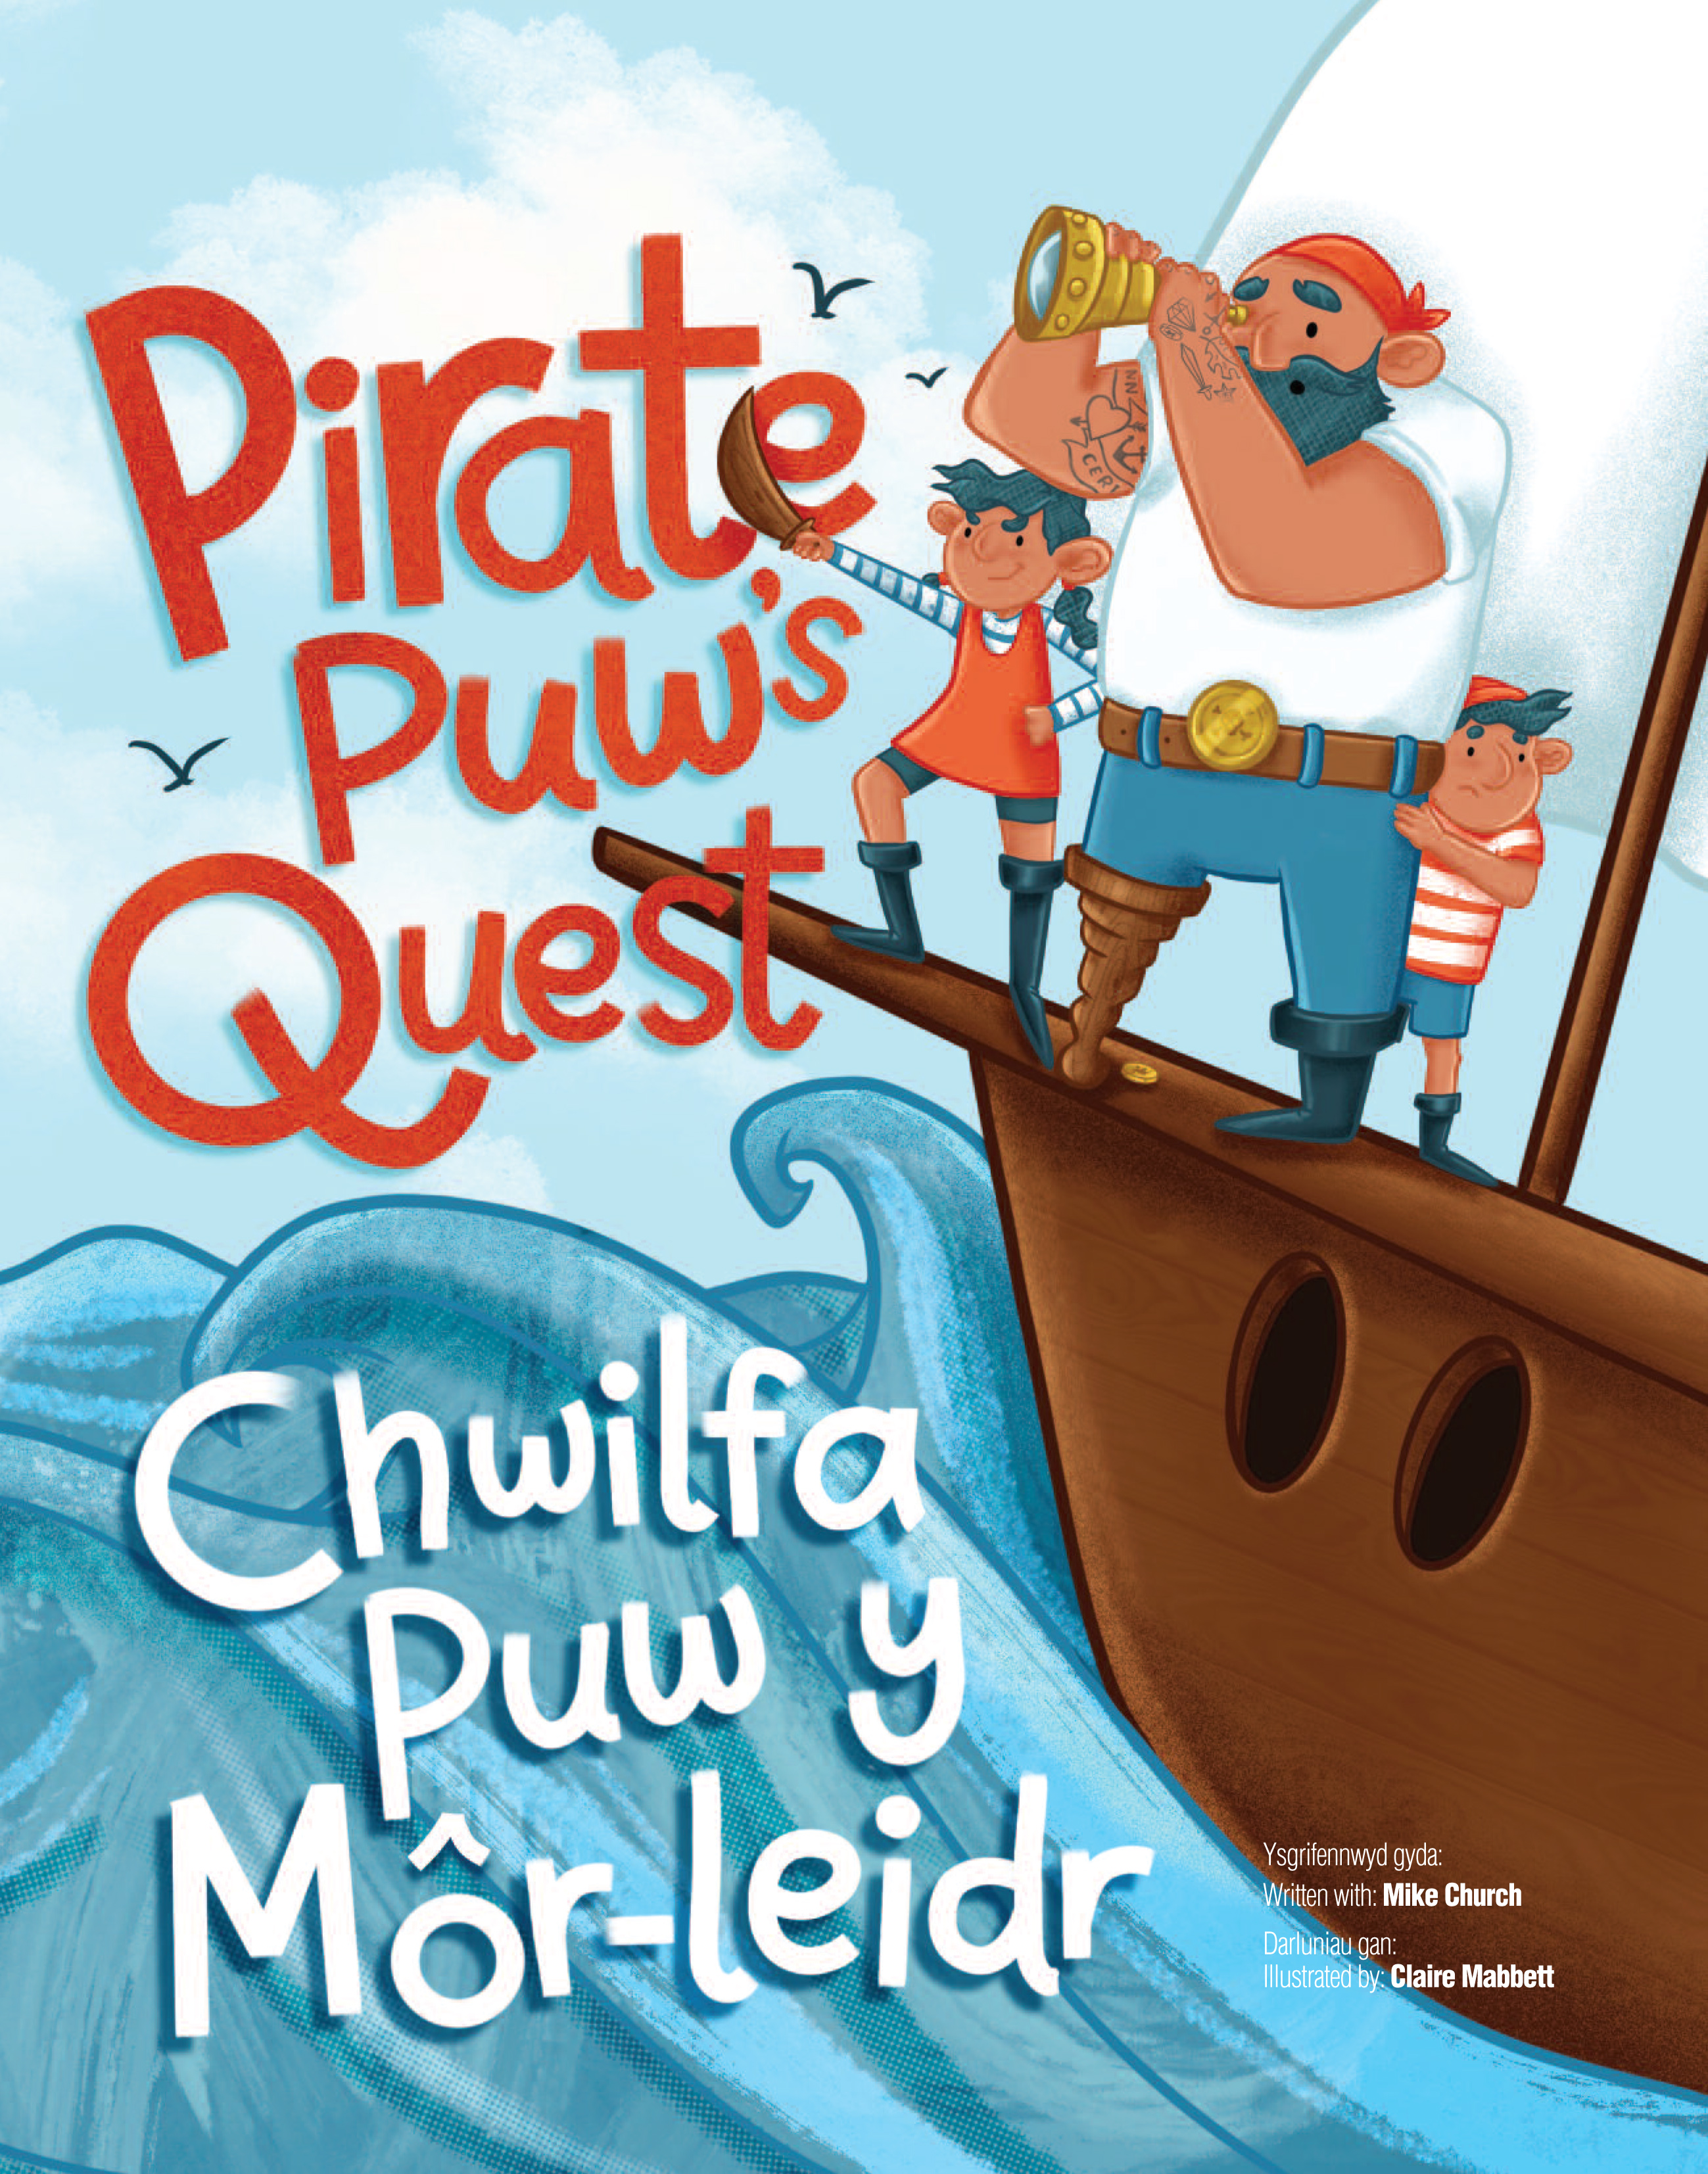 Pirate Puw's Quest (Wales) / Chwilfa Puw y Môr Leidr